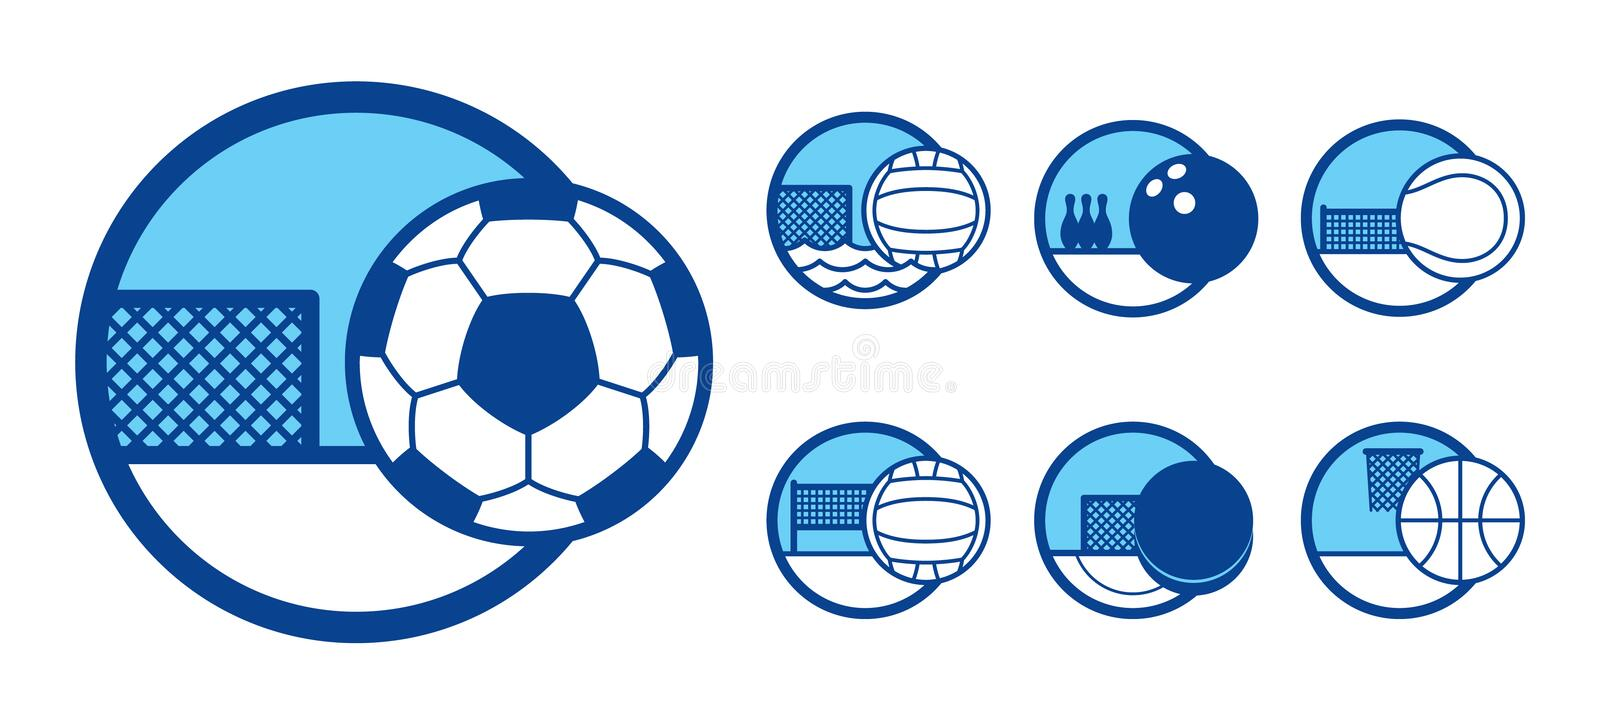 Download Sport icons set stock vector. Image of circle, game, sphere - 4619968